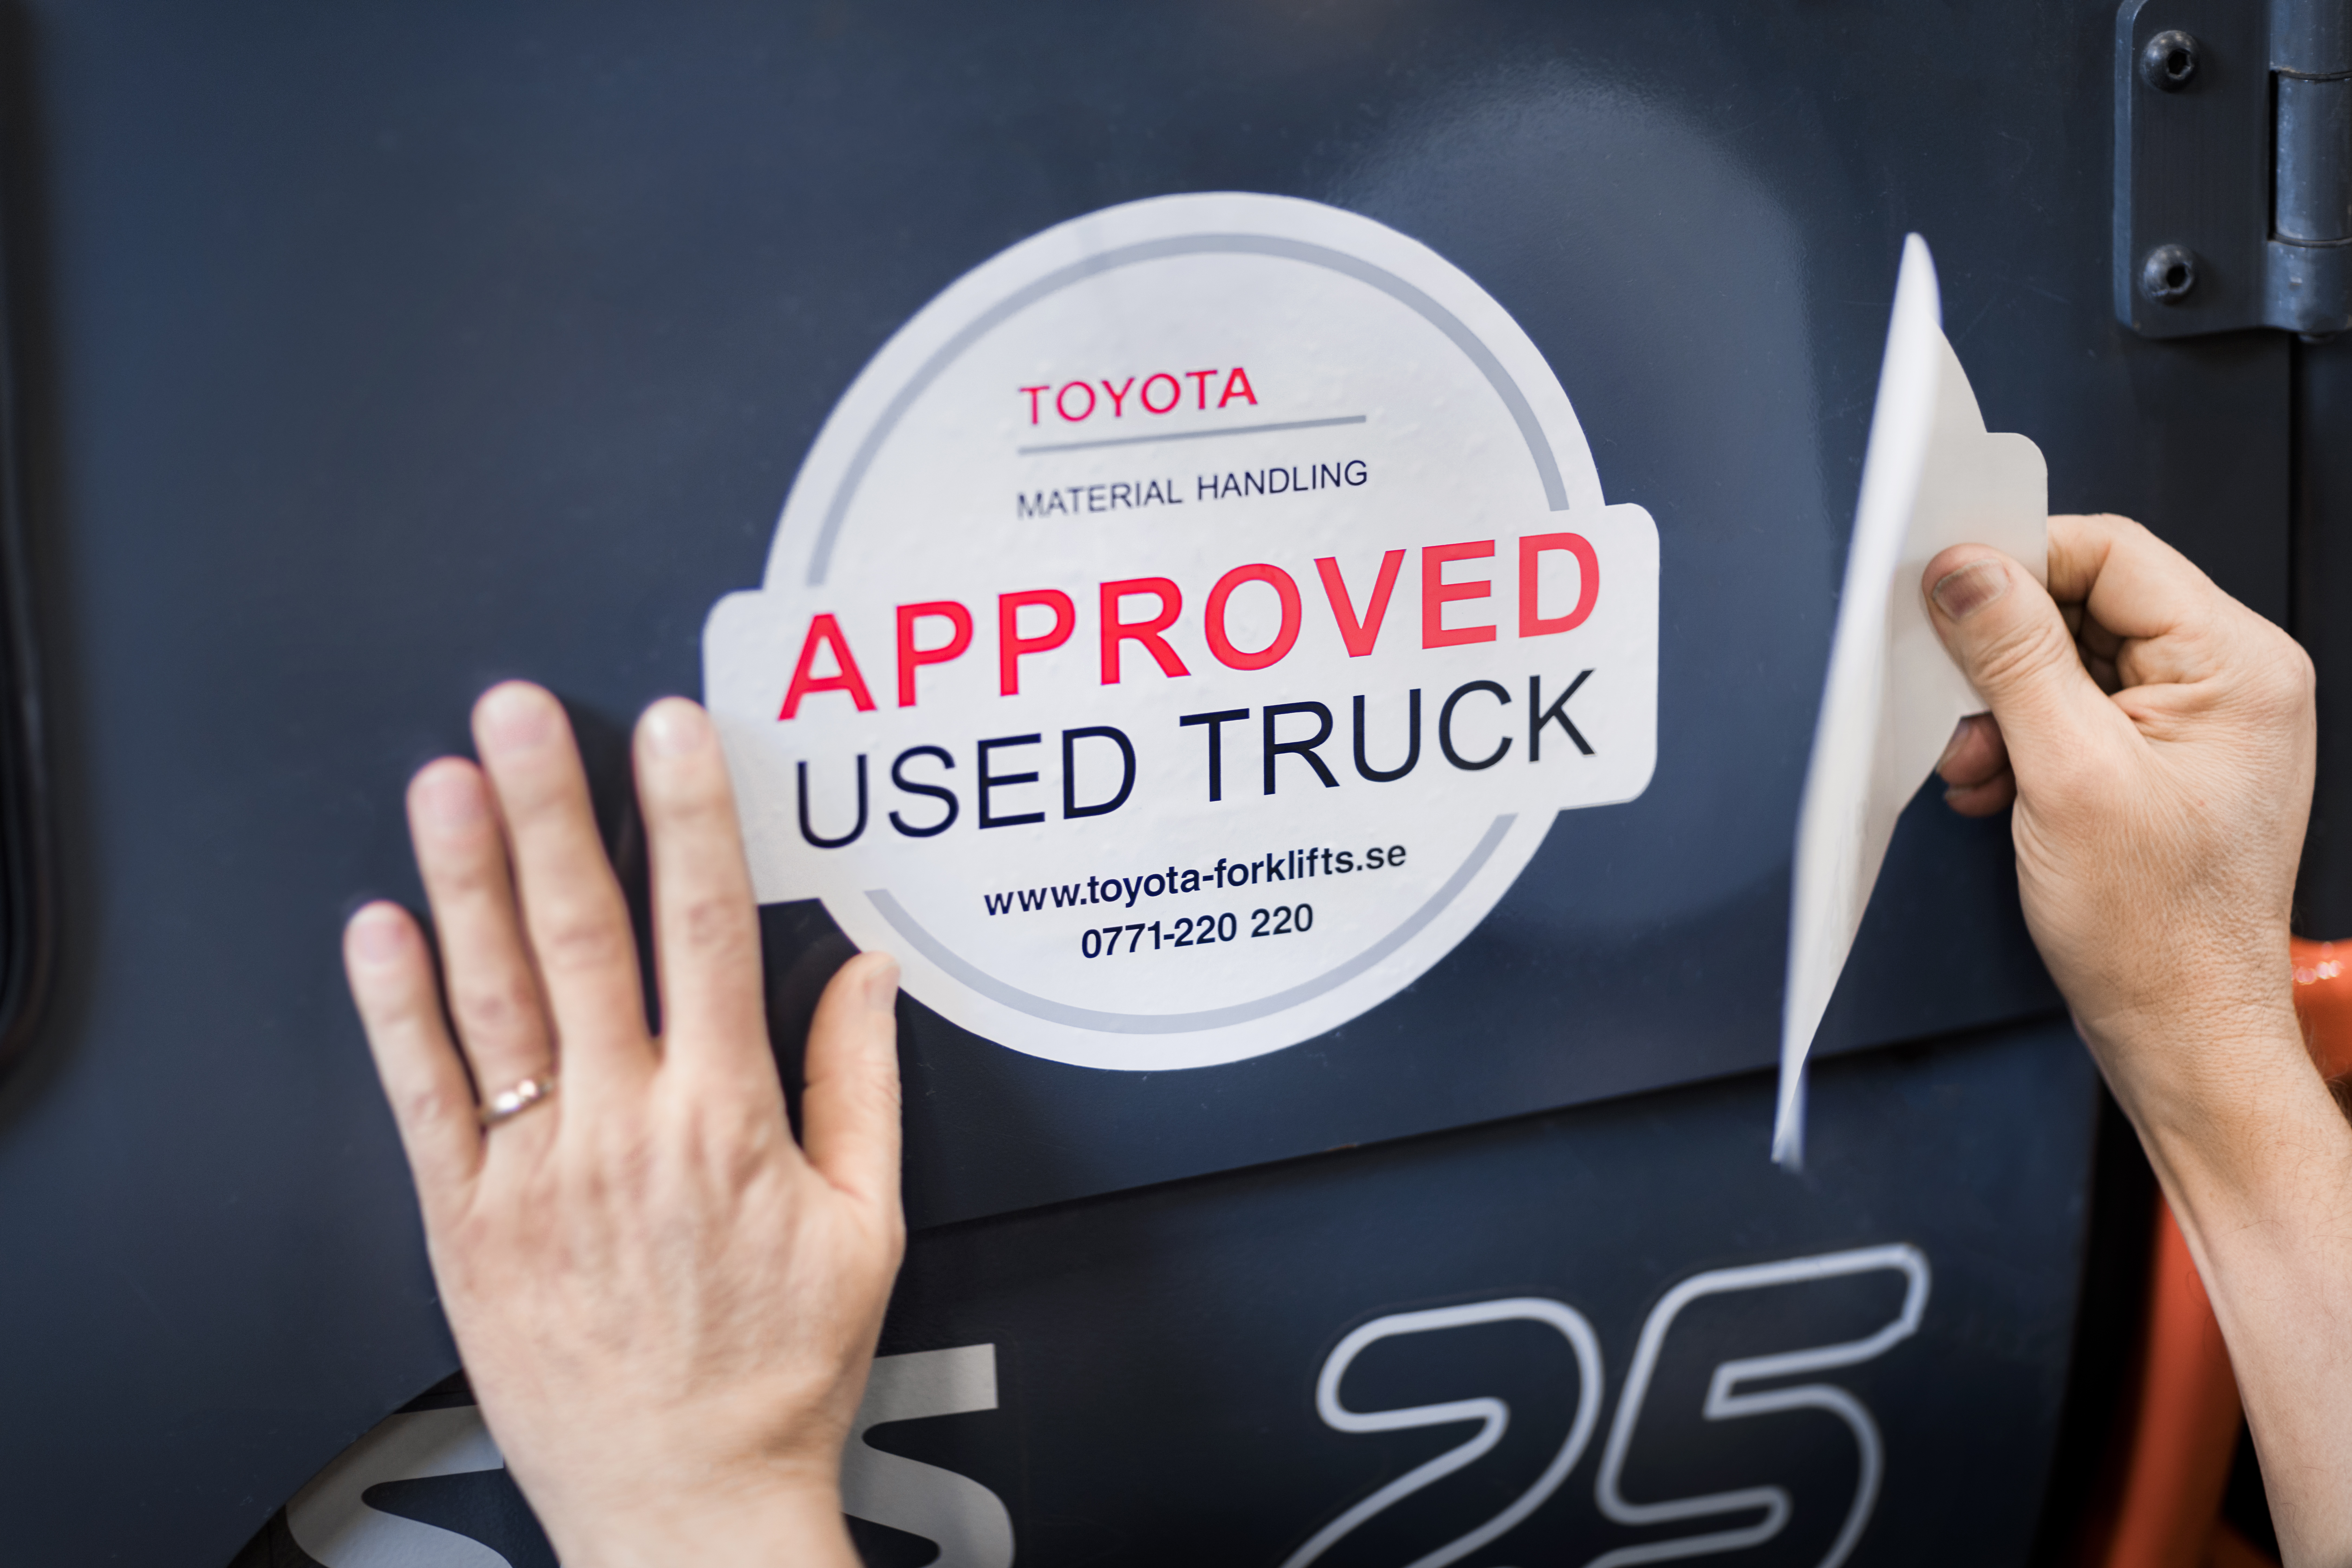 Approved used truck Toyota